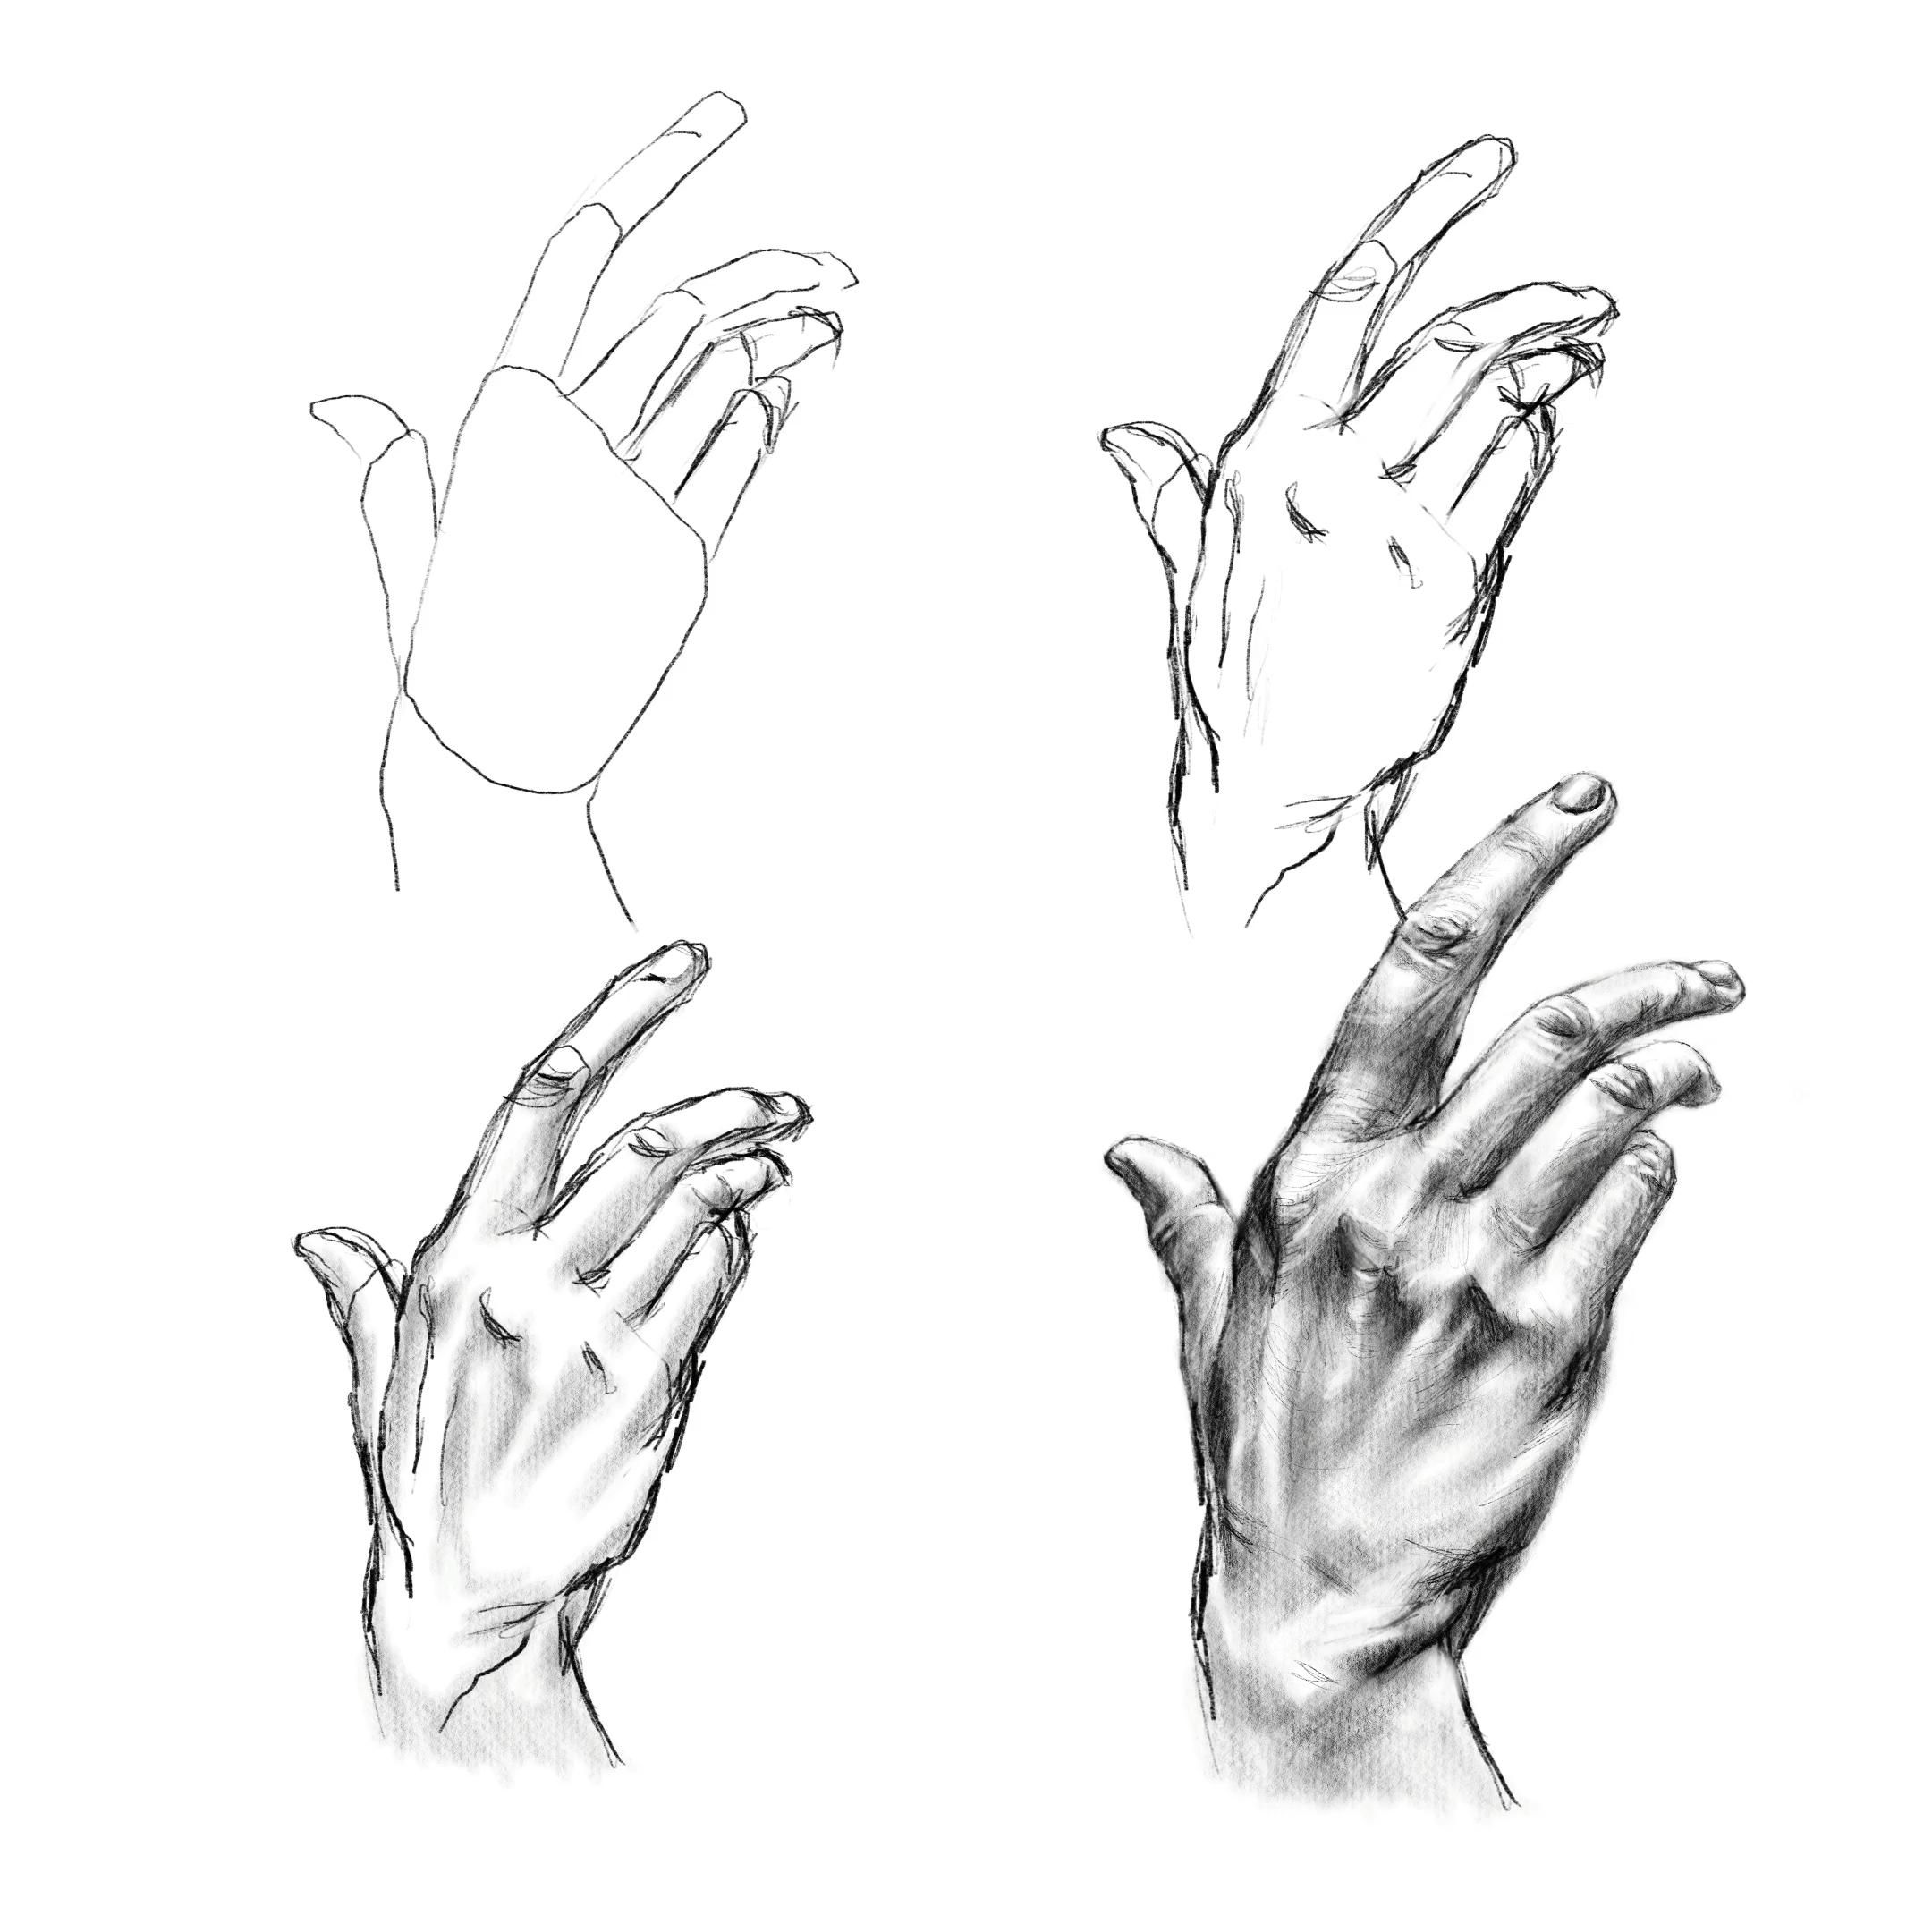 How to draw a hand, cremission art studio, drawing tutorial, art education, illustration, sketch